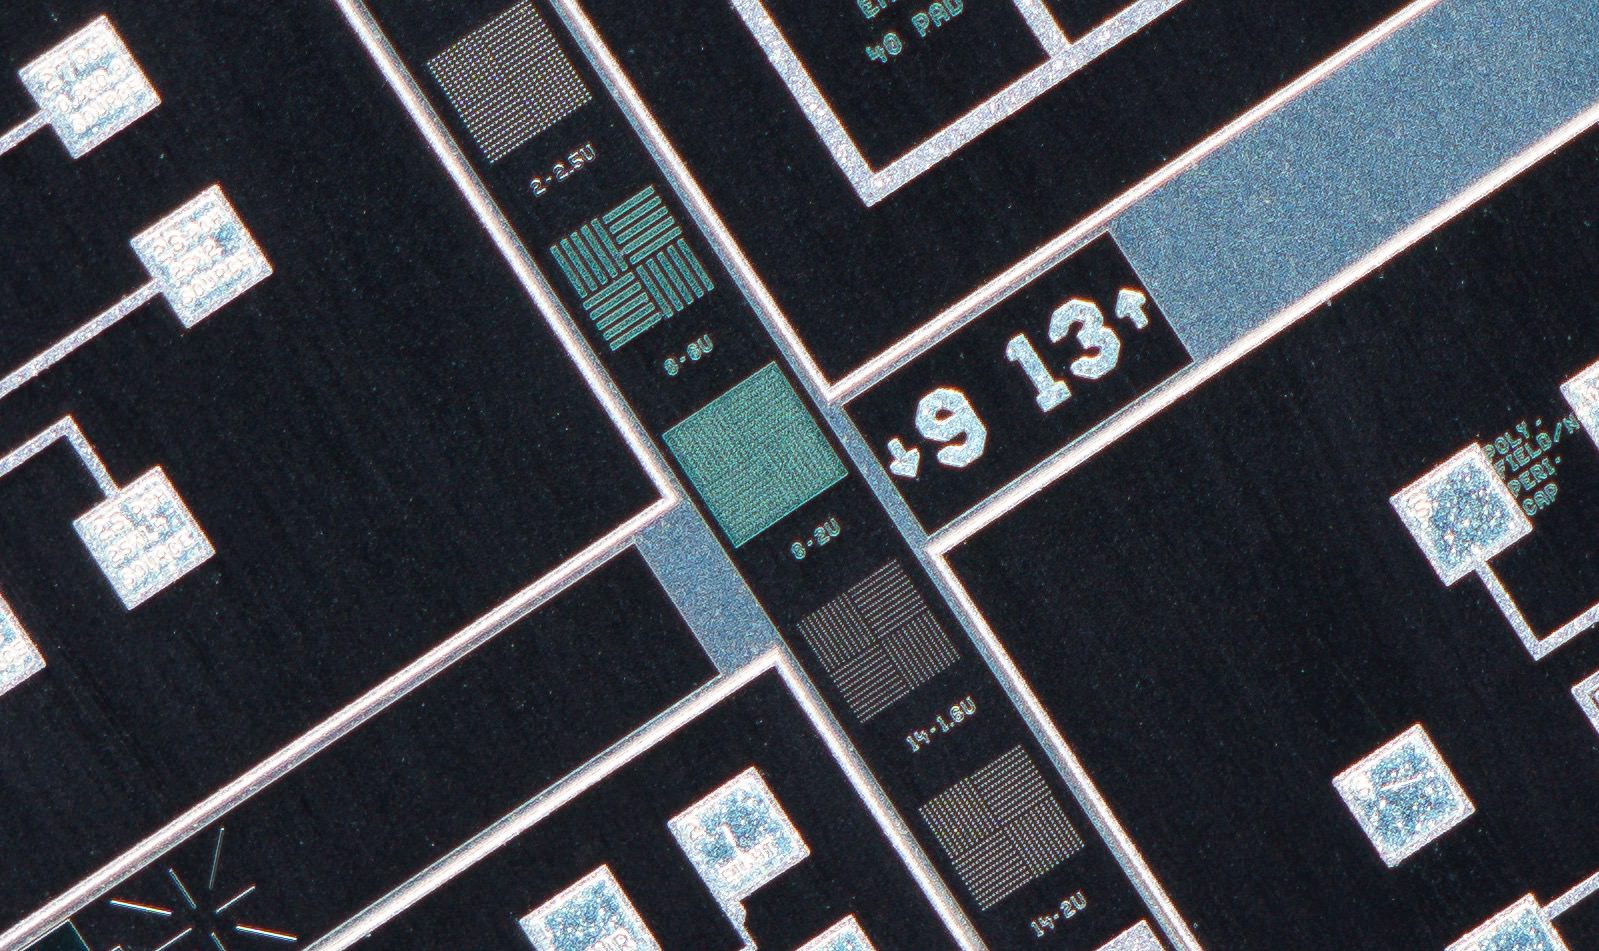 Nikon CFI Plan Apo 4X/0.20 ∞/- Microscope Objective 100% actual pixel view center crop. Clicking on an image will open a larger version.